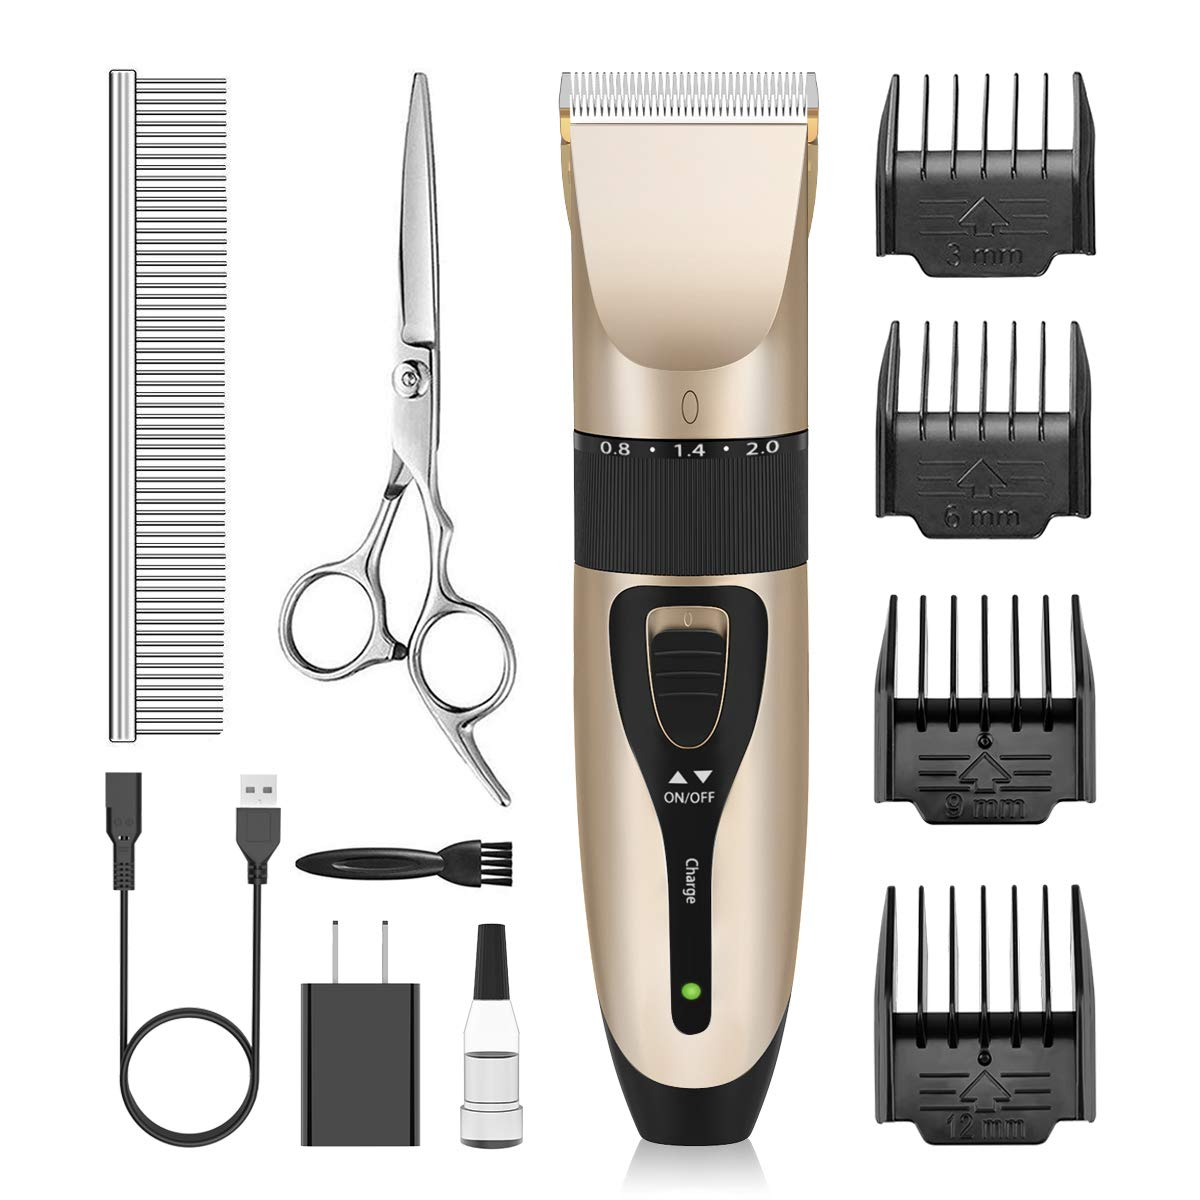 Nicewell Dog Clippers Powerful and Low Noise Dog Grooming Kit, USB Rechargeable Cordless Pet Clippers for Dogs Cats, with Attachment Guide Combs and Scissors